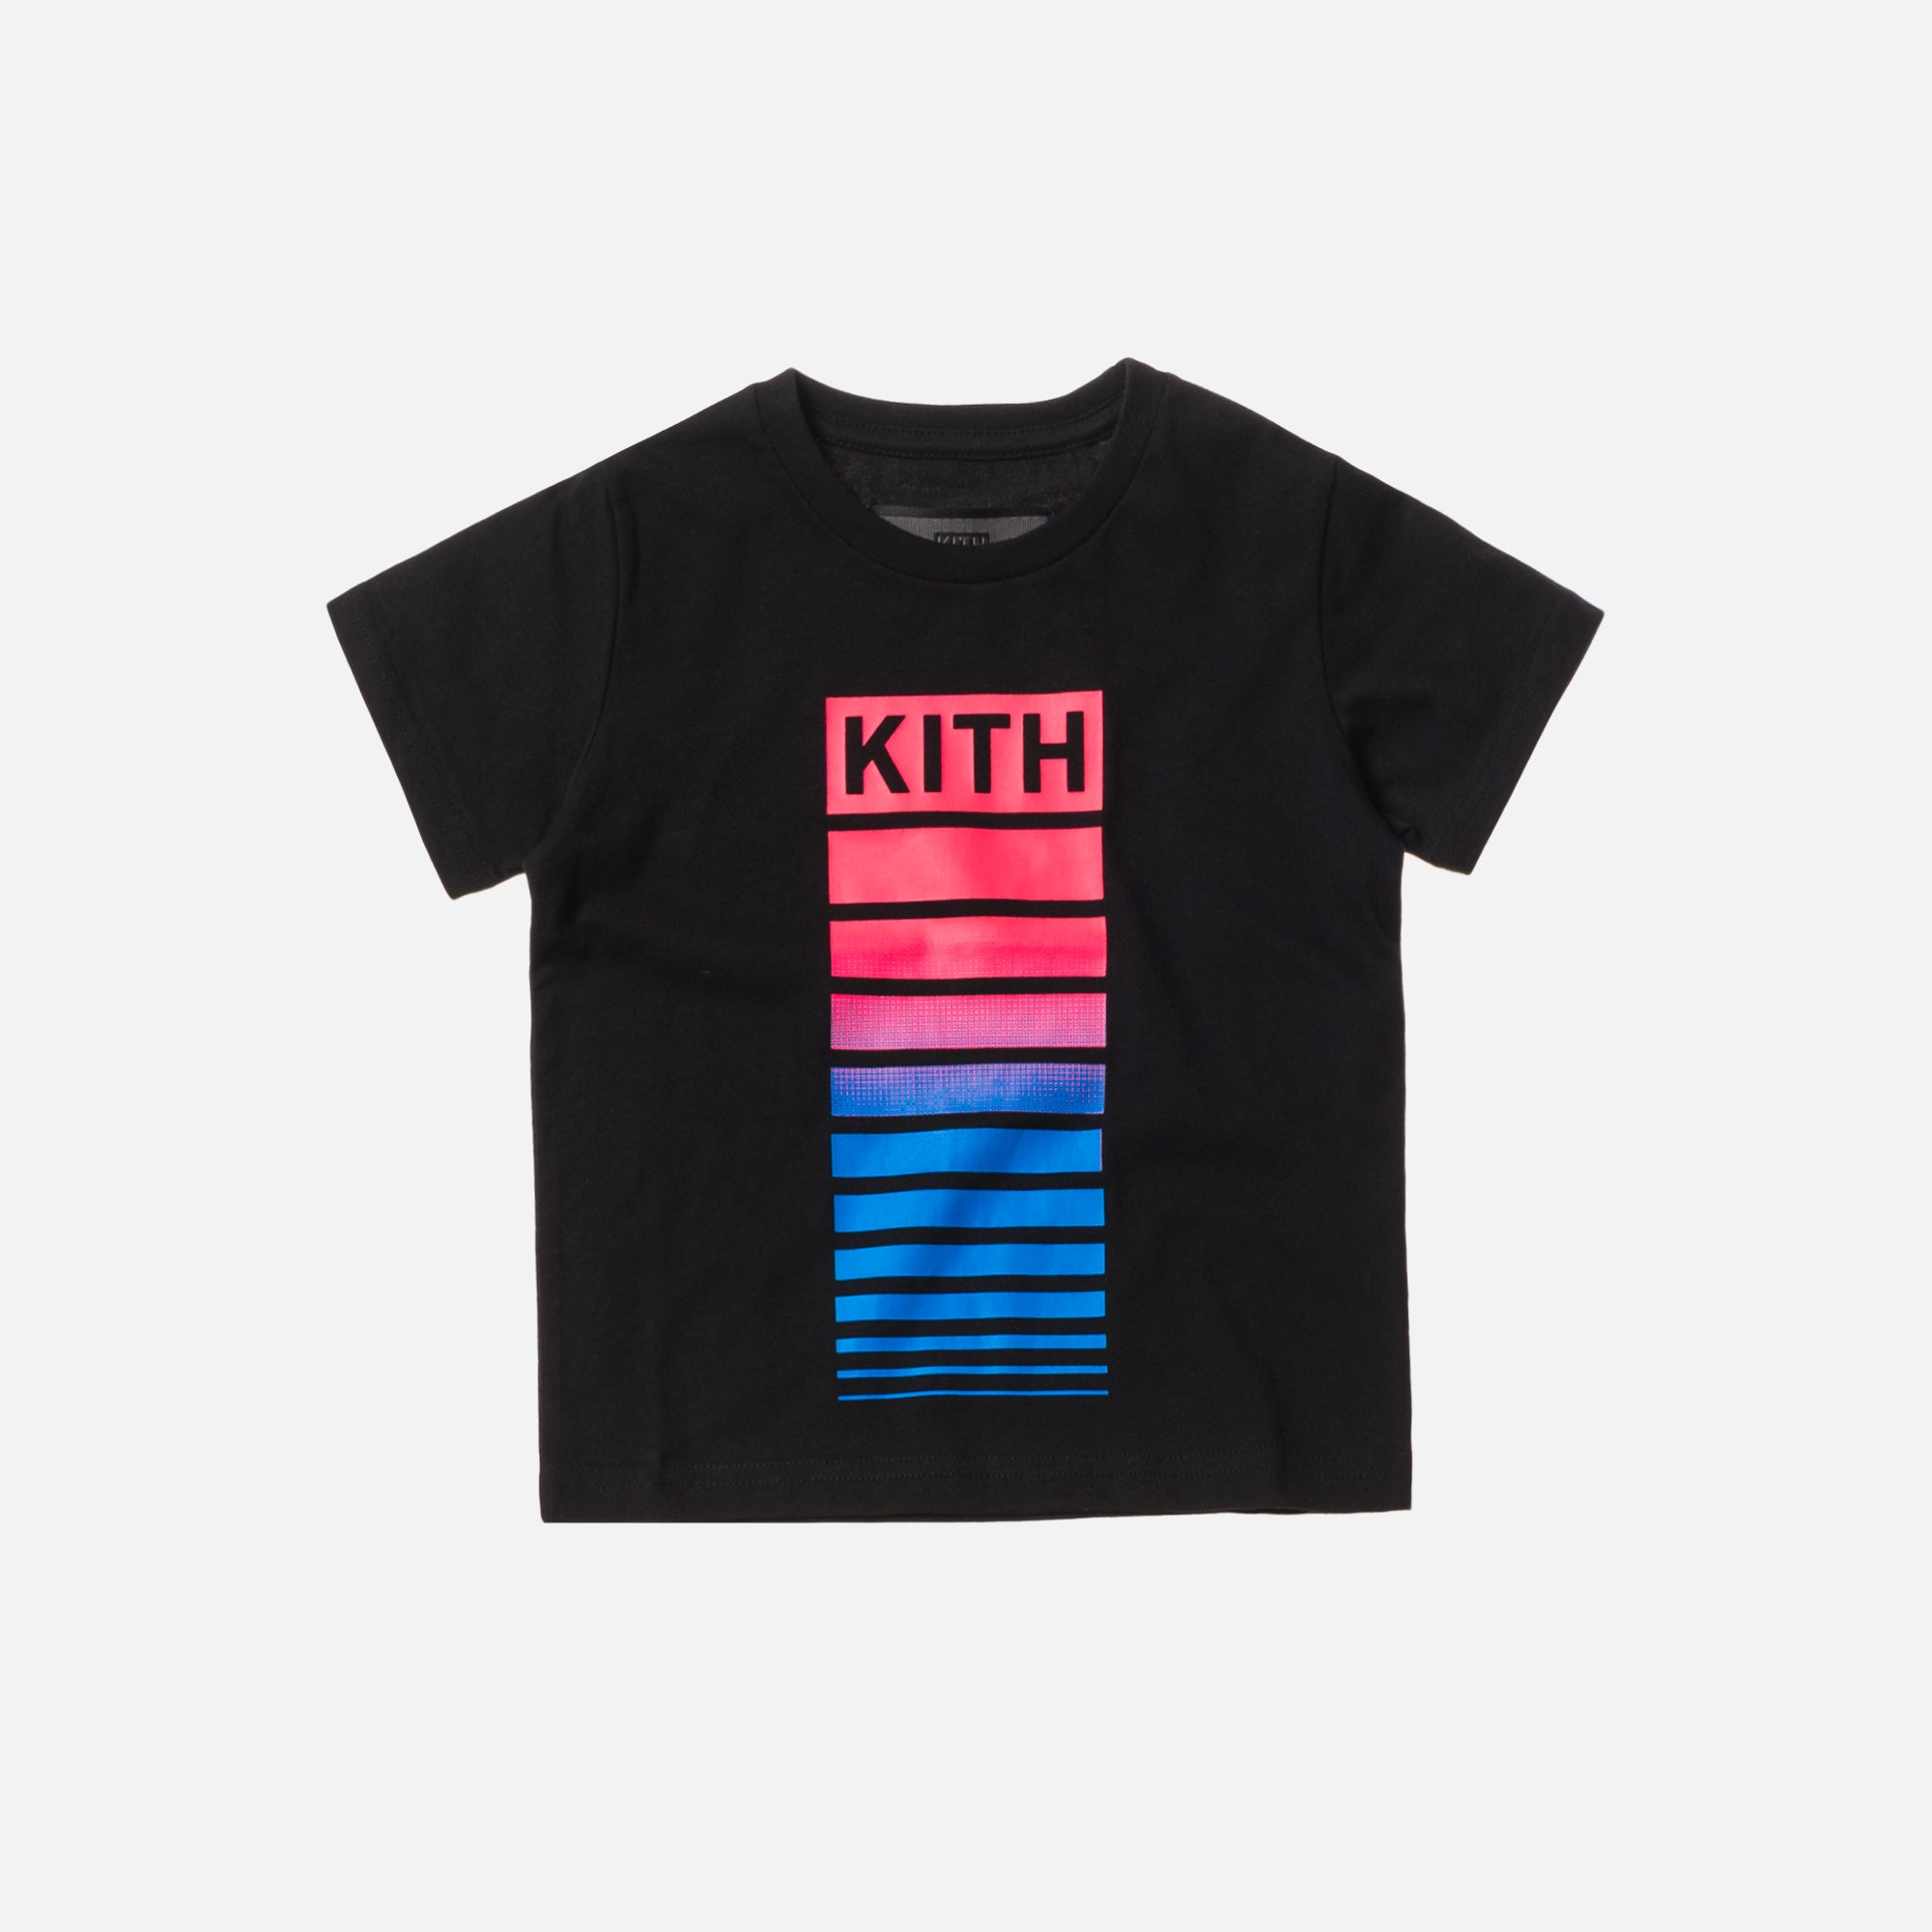 Kith Kids Frequency Tee - Black